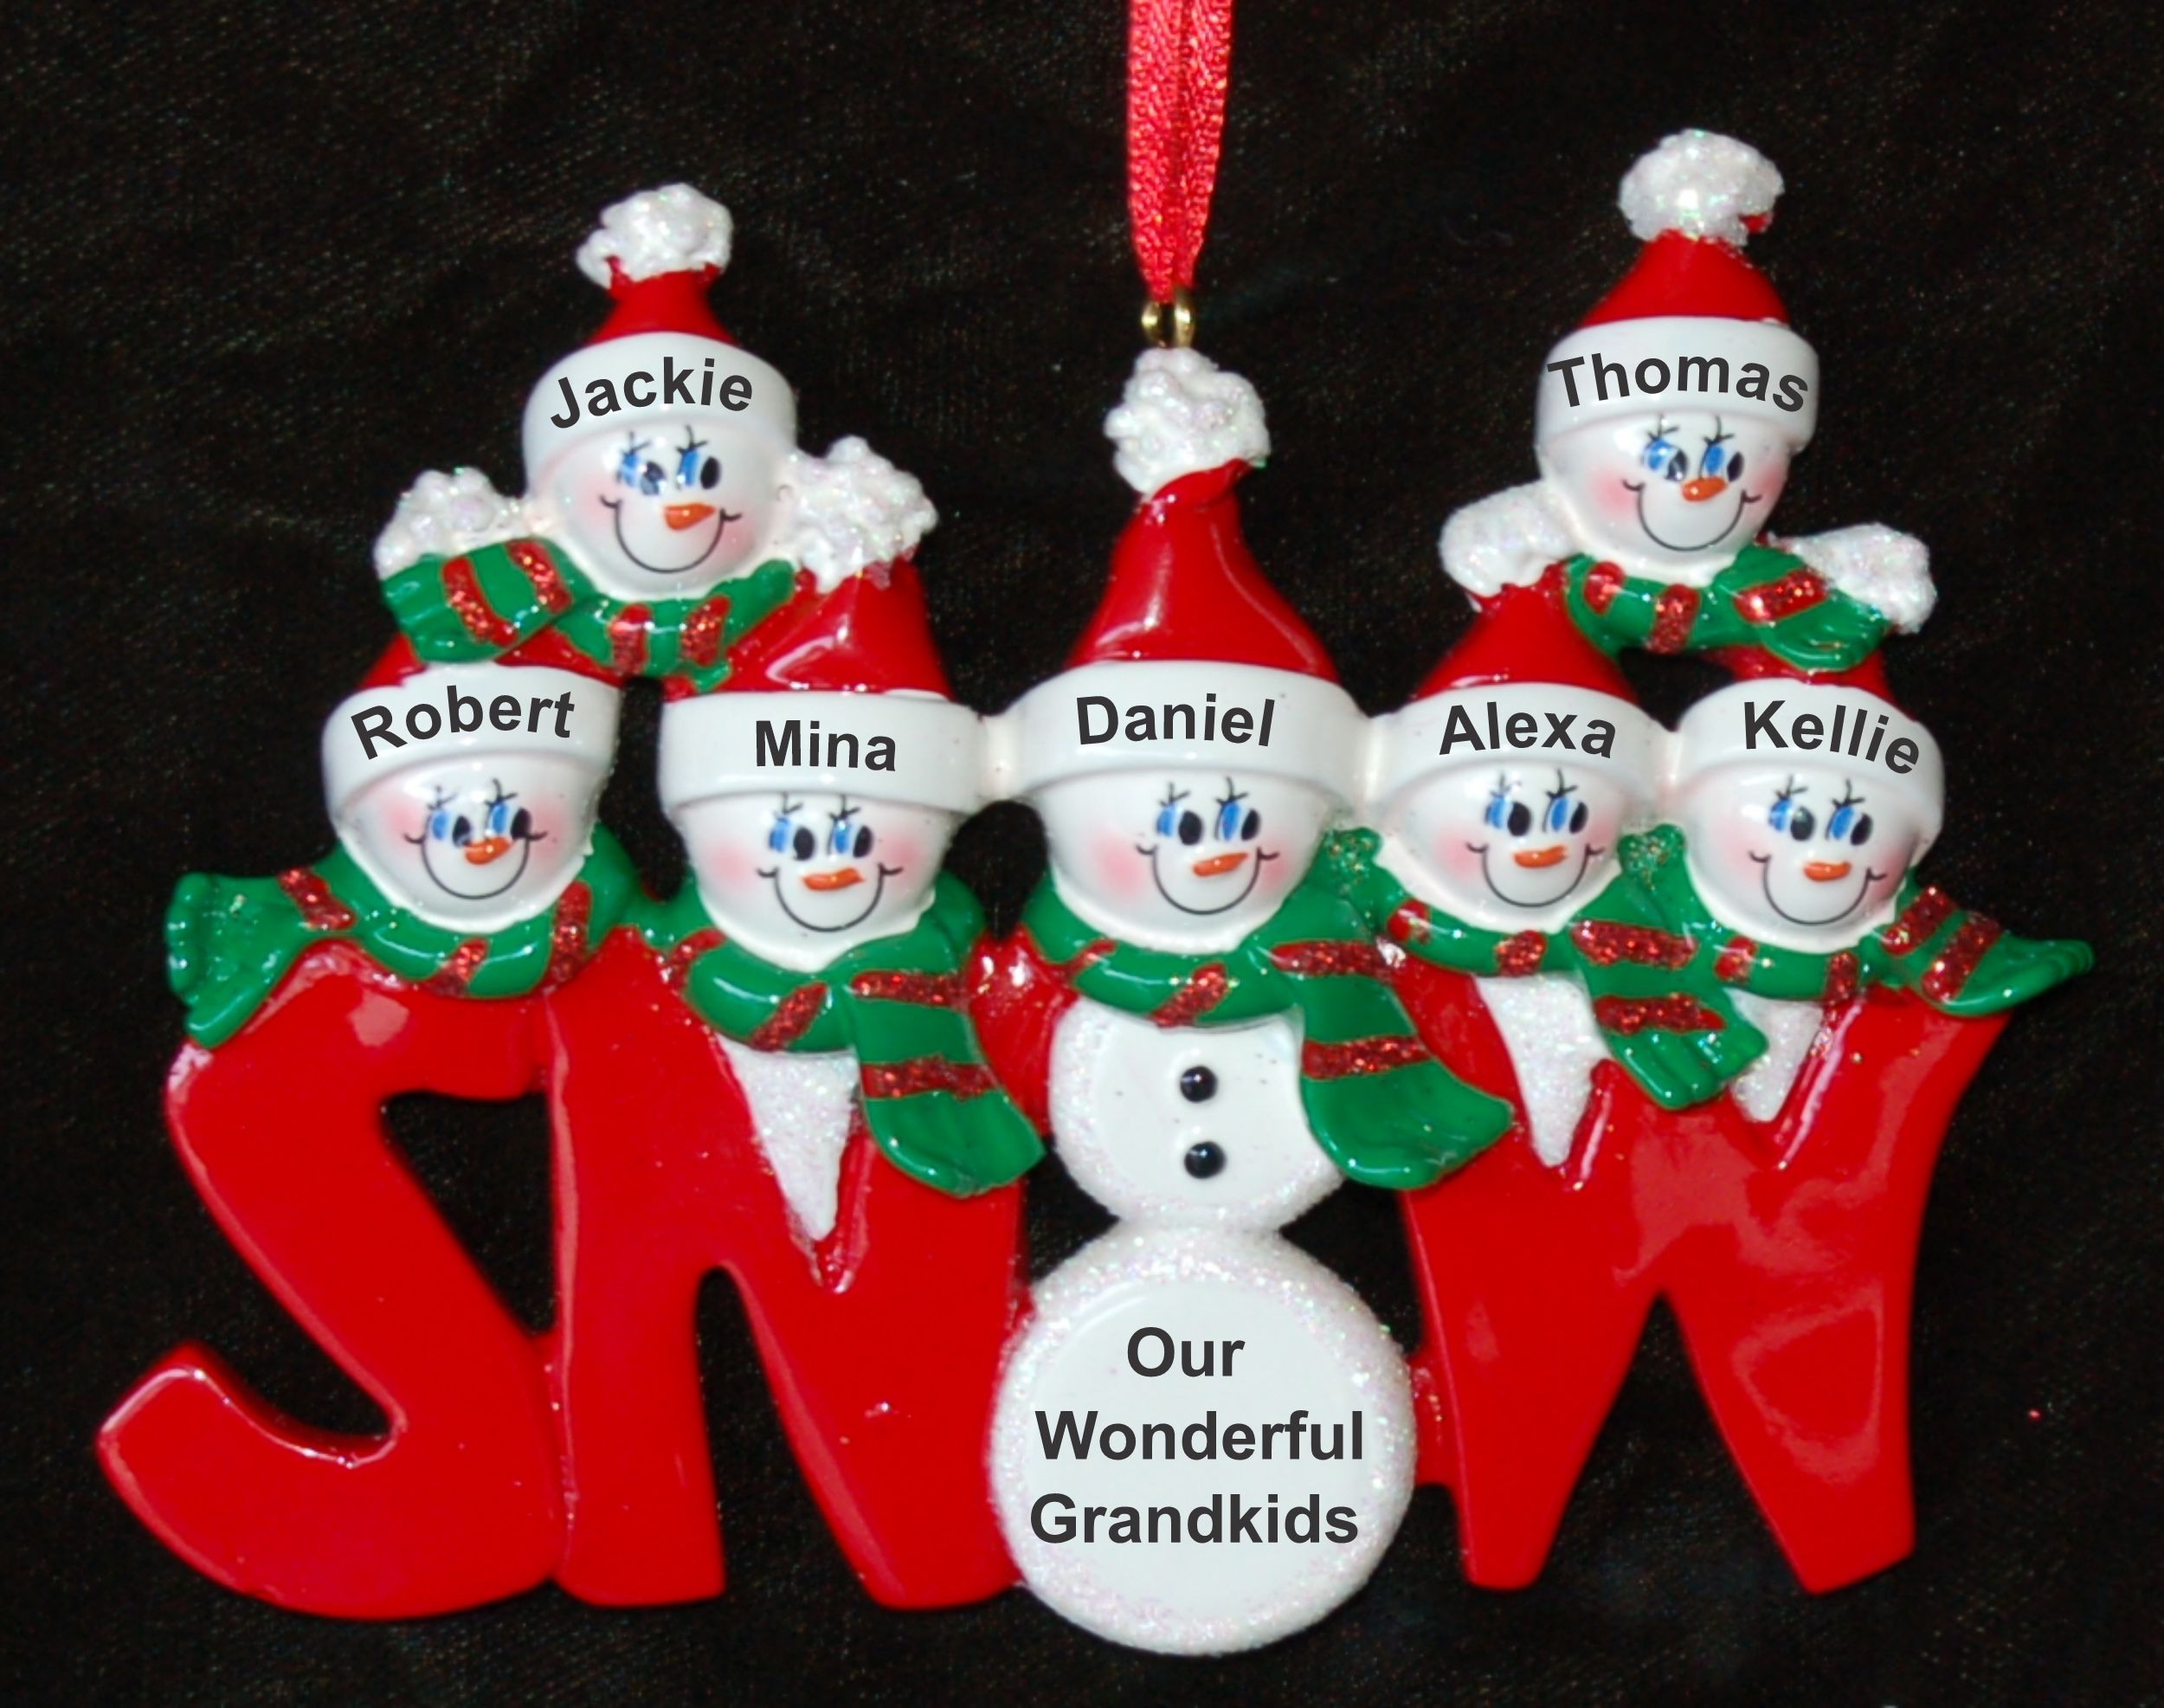 Personalized Grandparents Christmas Ornament Snow Peeps 7 Grandkids by Russell Rhodes